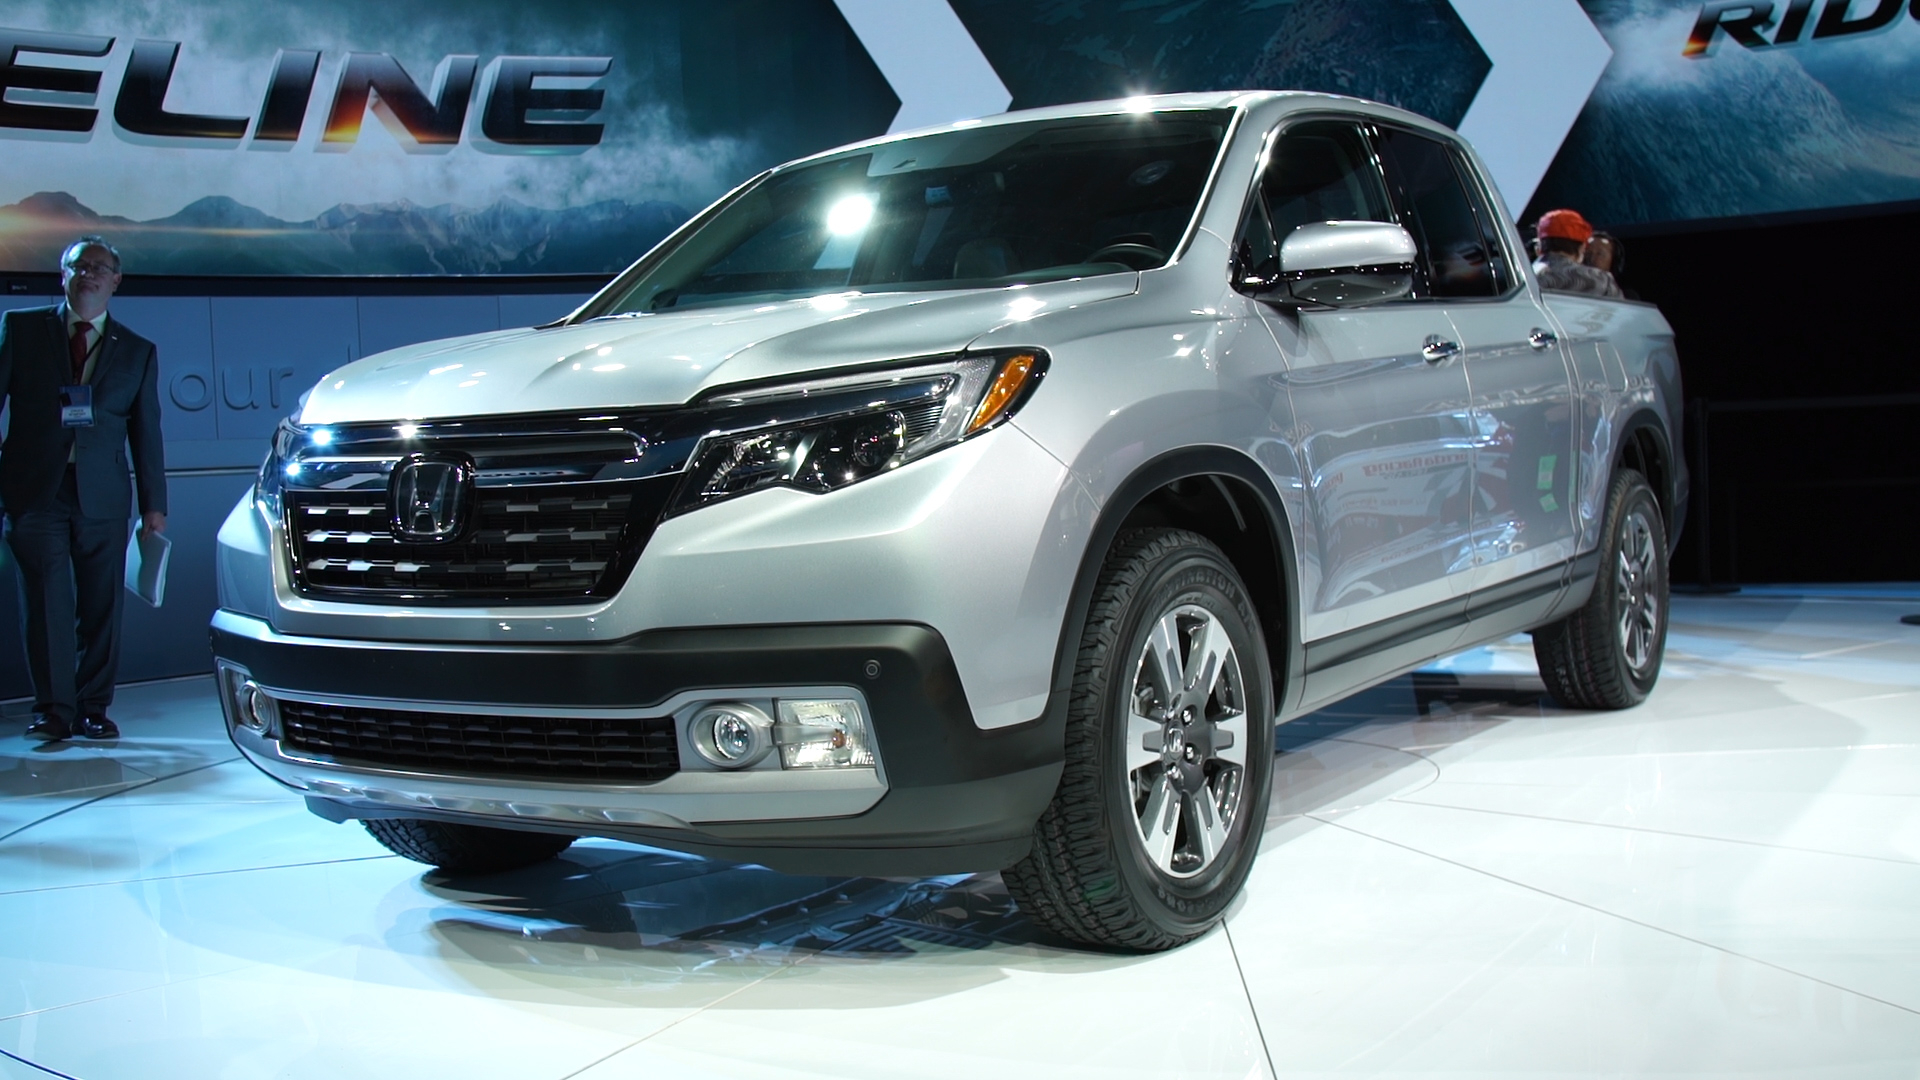 2017 Honda Ridgeline Pickup Truck Looks Conventional But